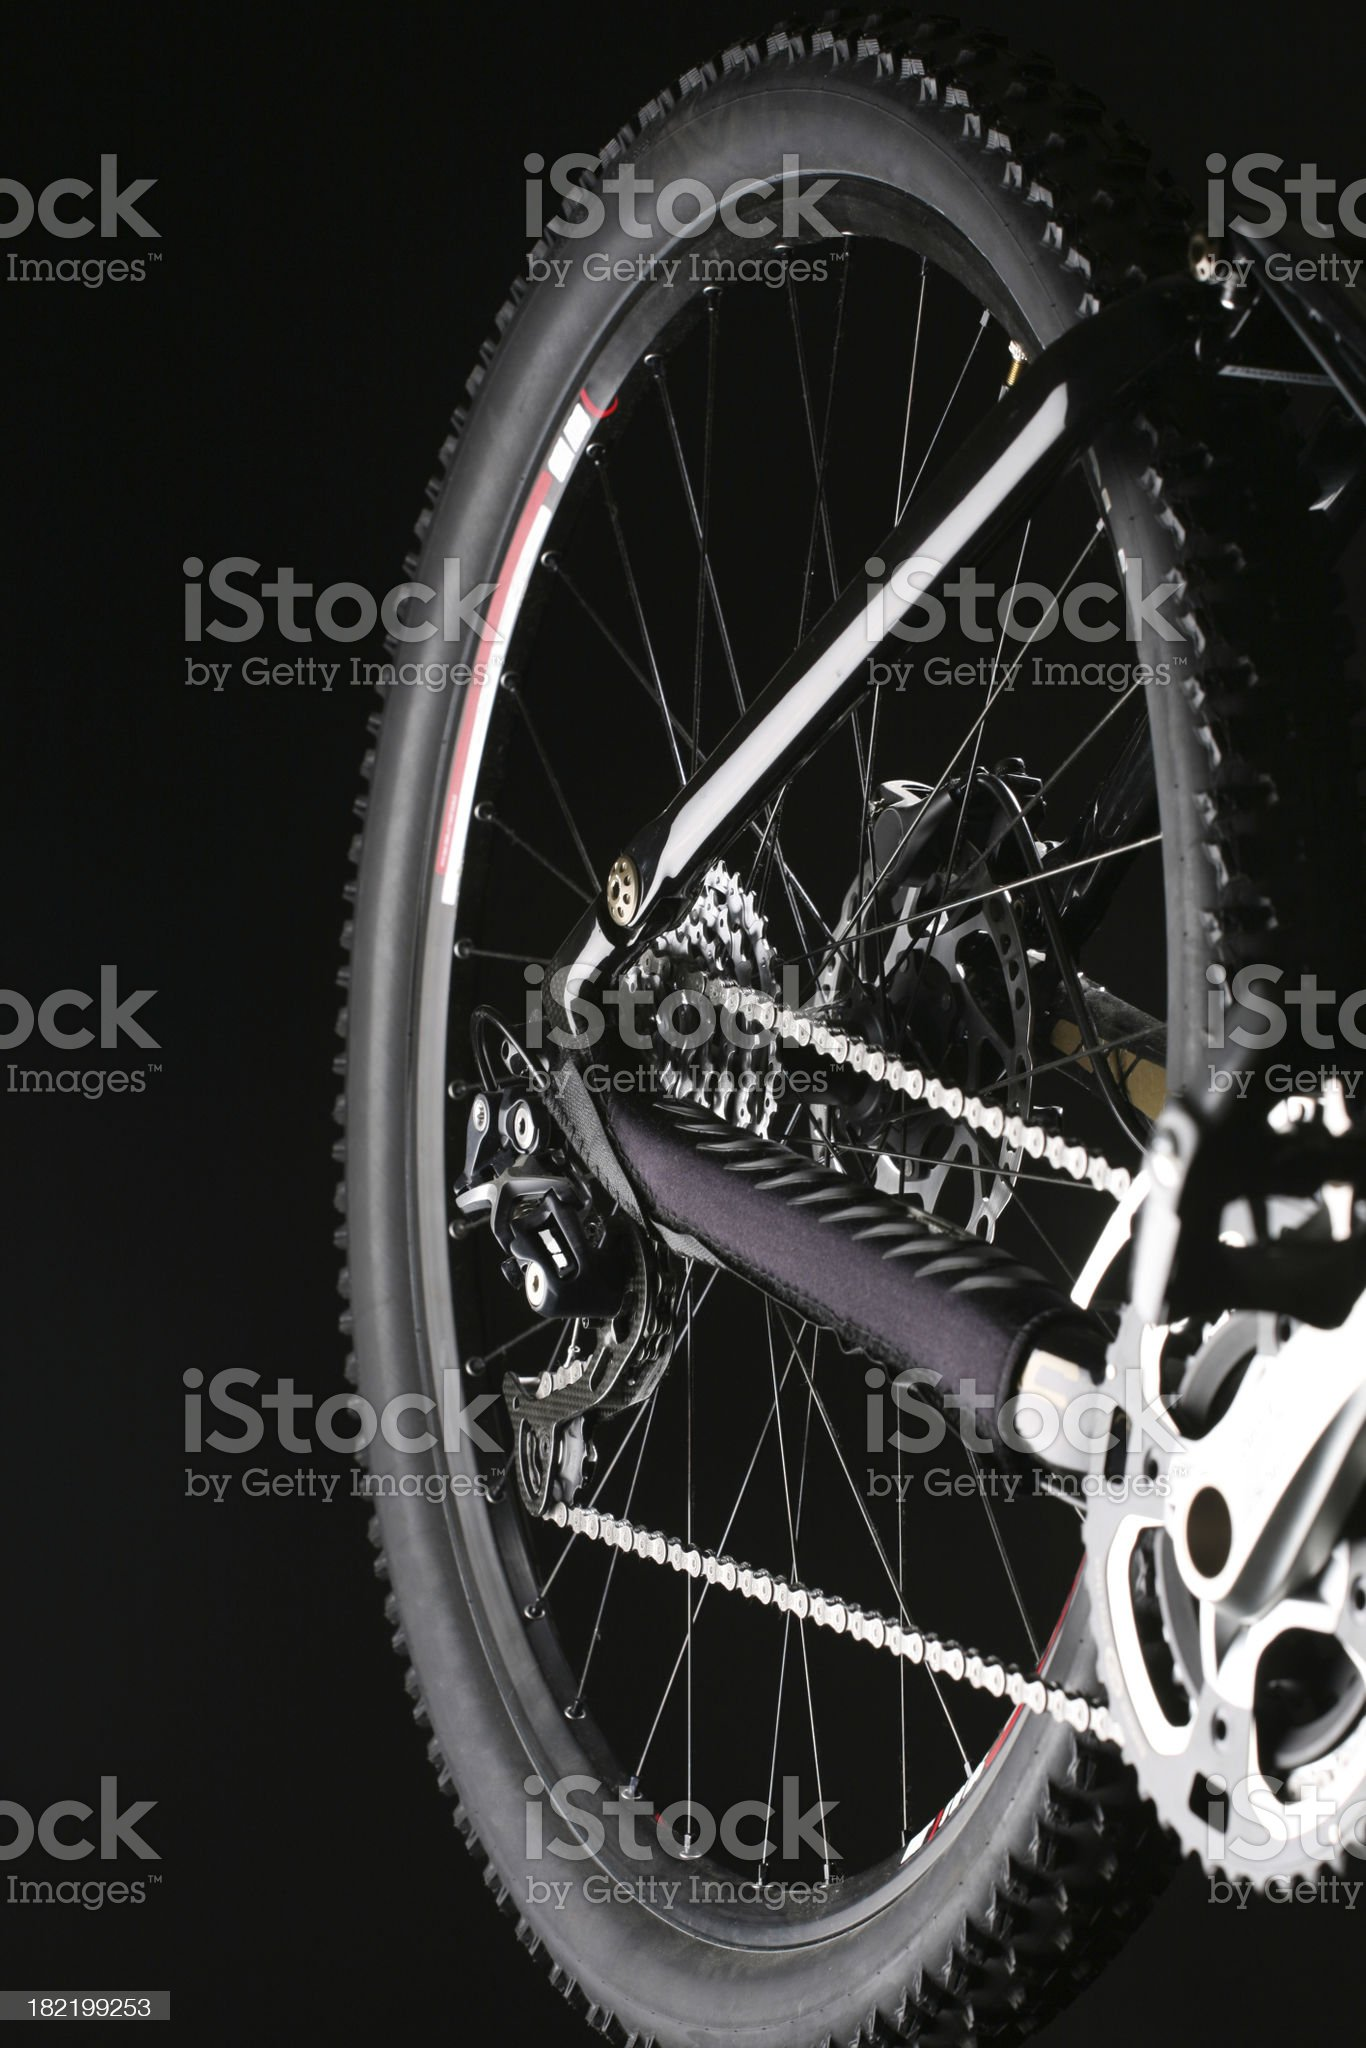 Bicycle gear royalty-free stock photo